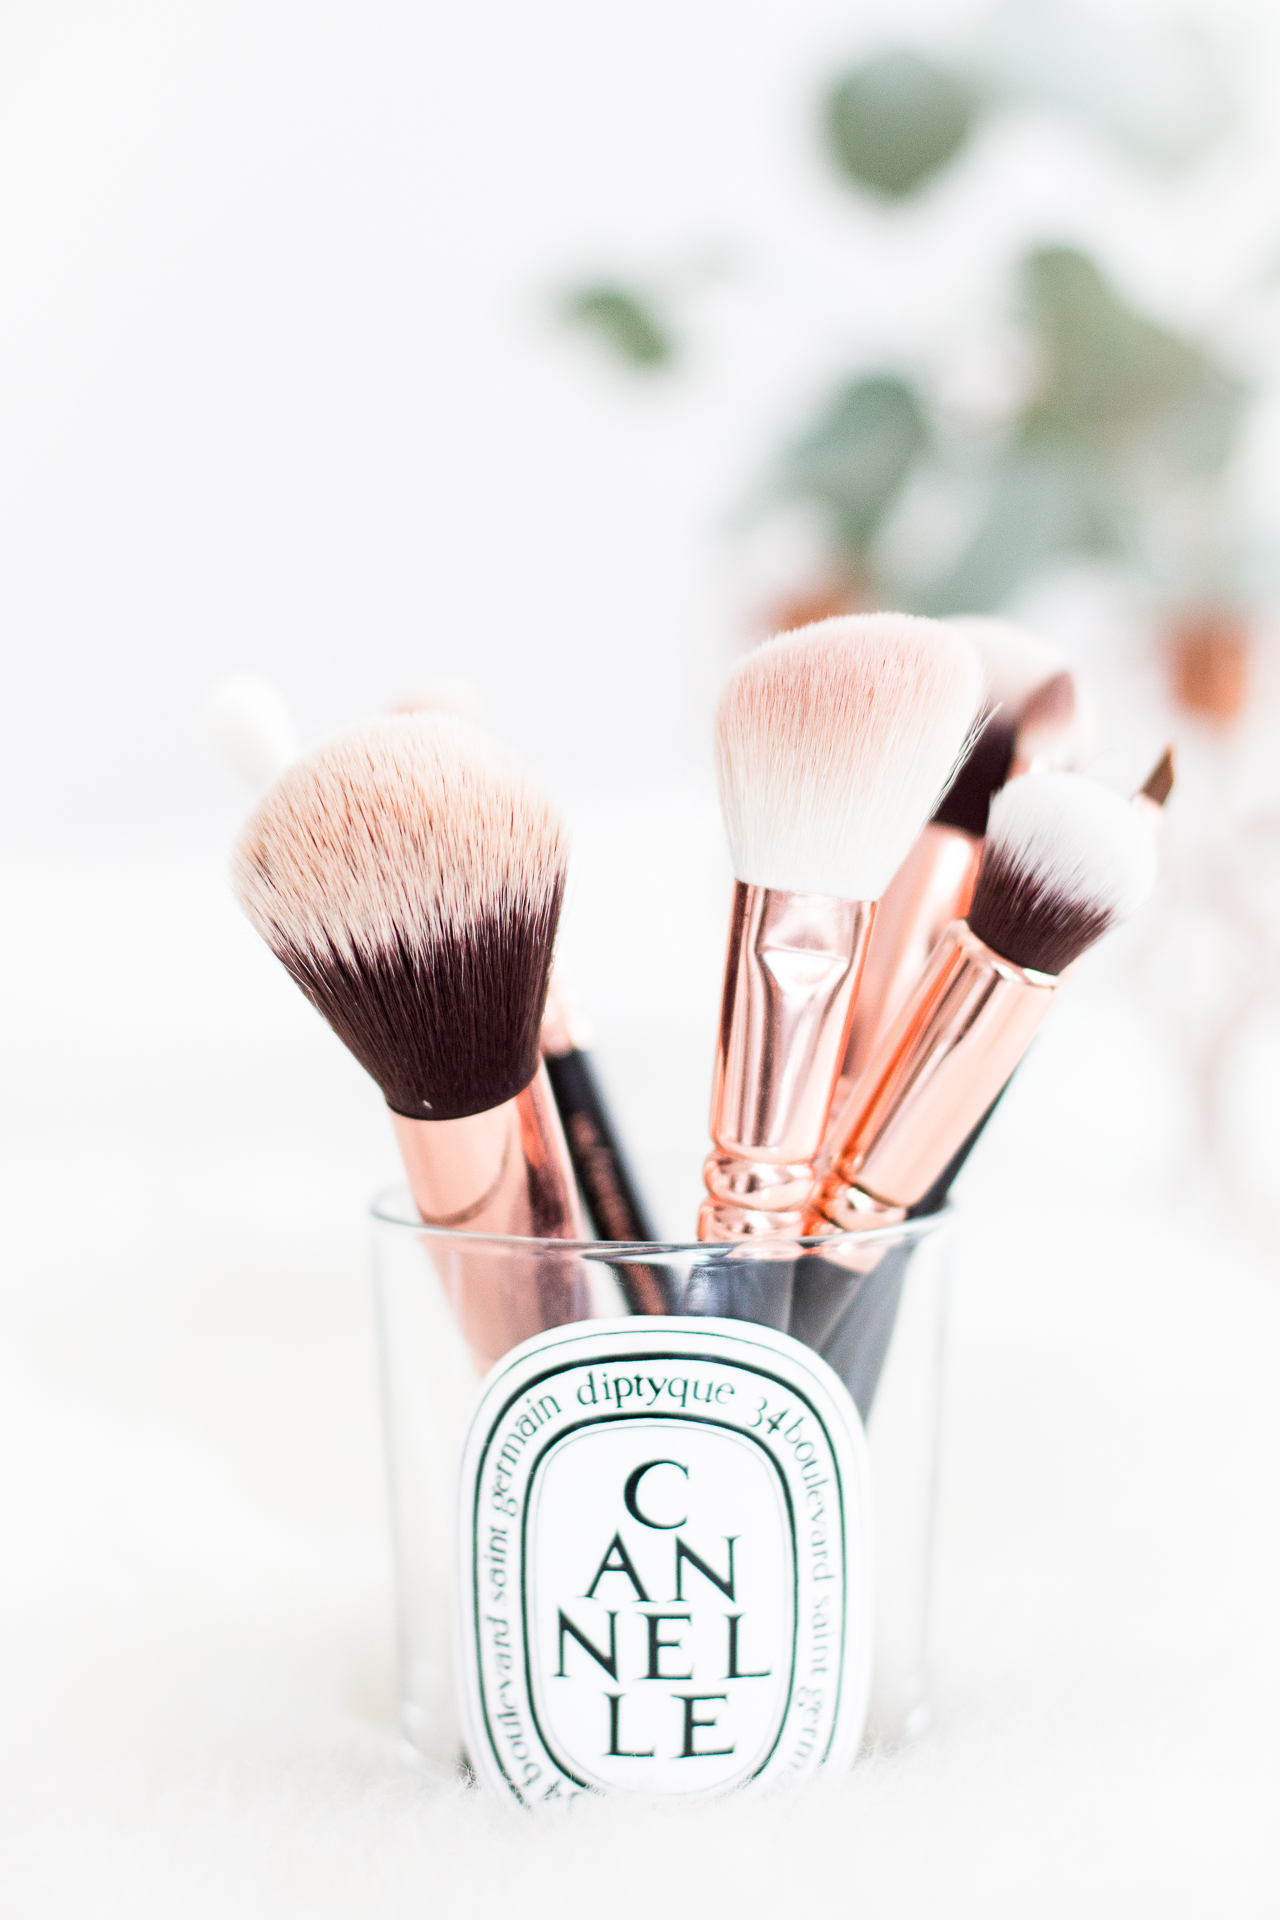 BEAUTY TALK: dipped in roségold